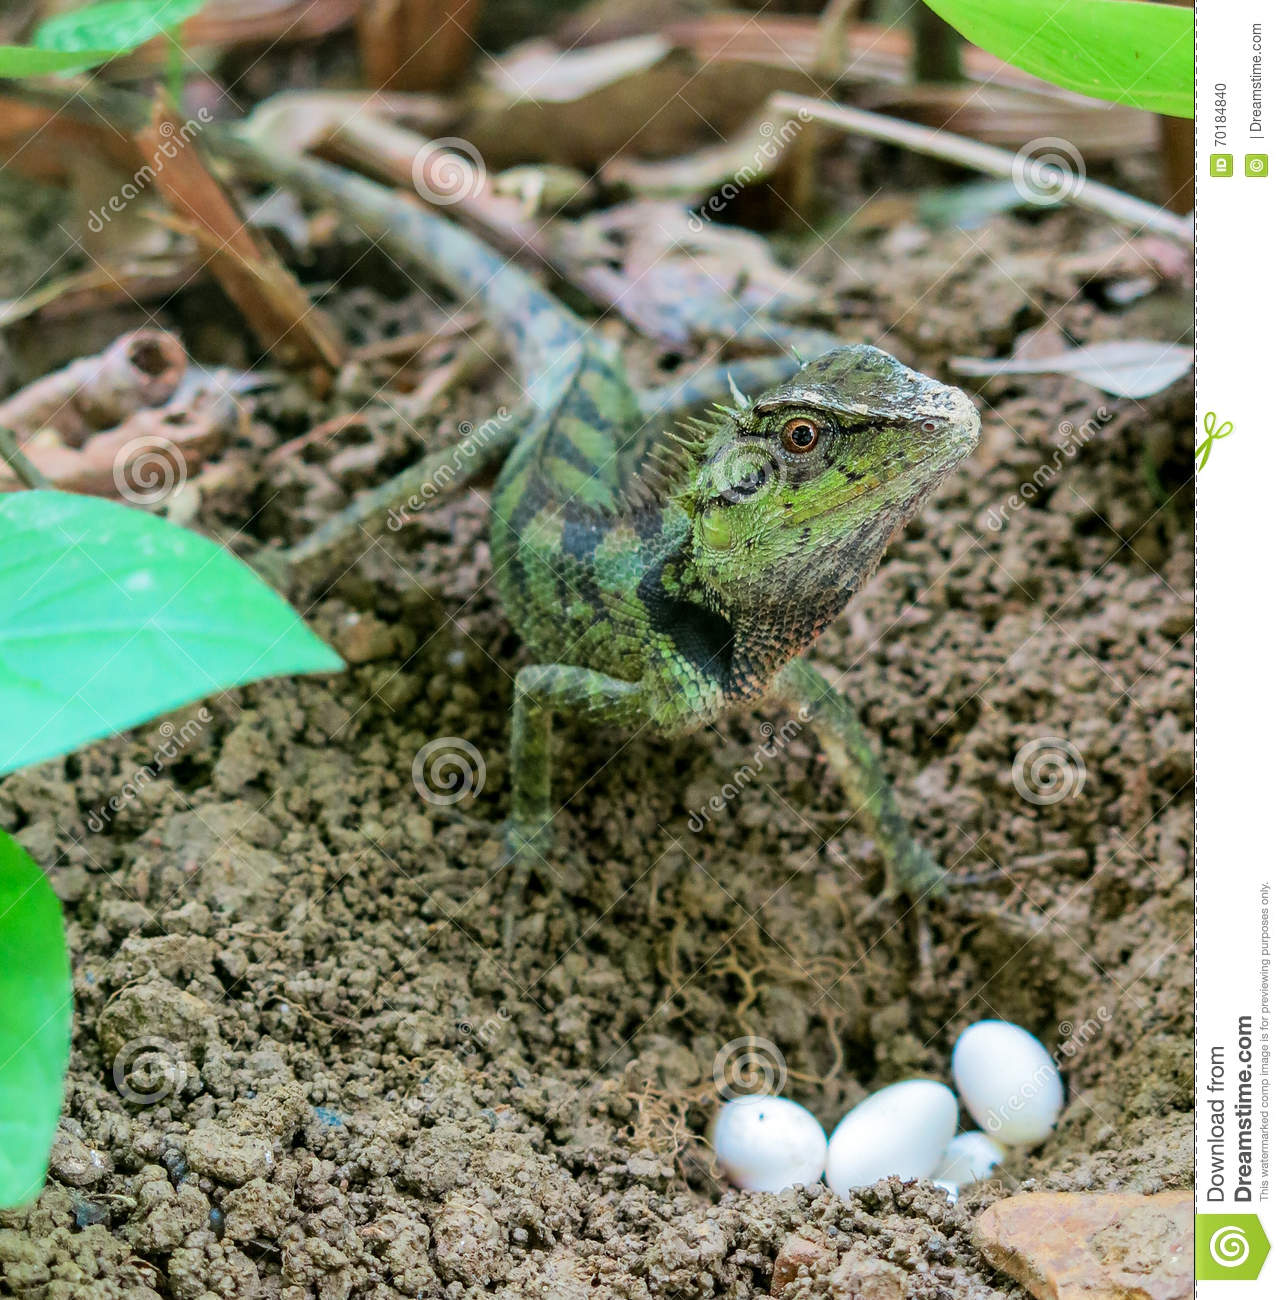 how to find lizard eggs